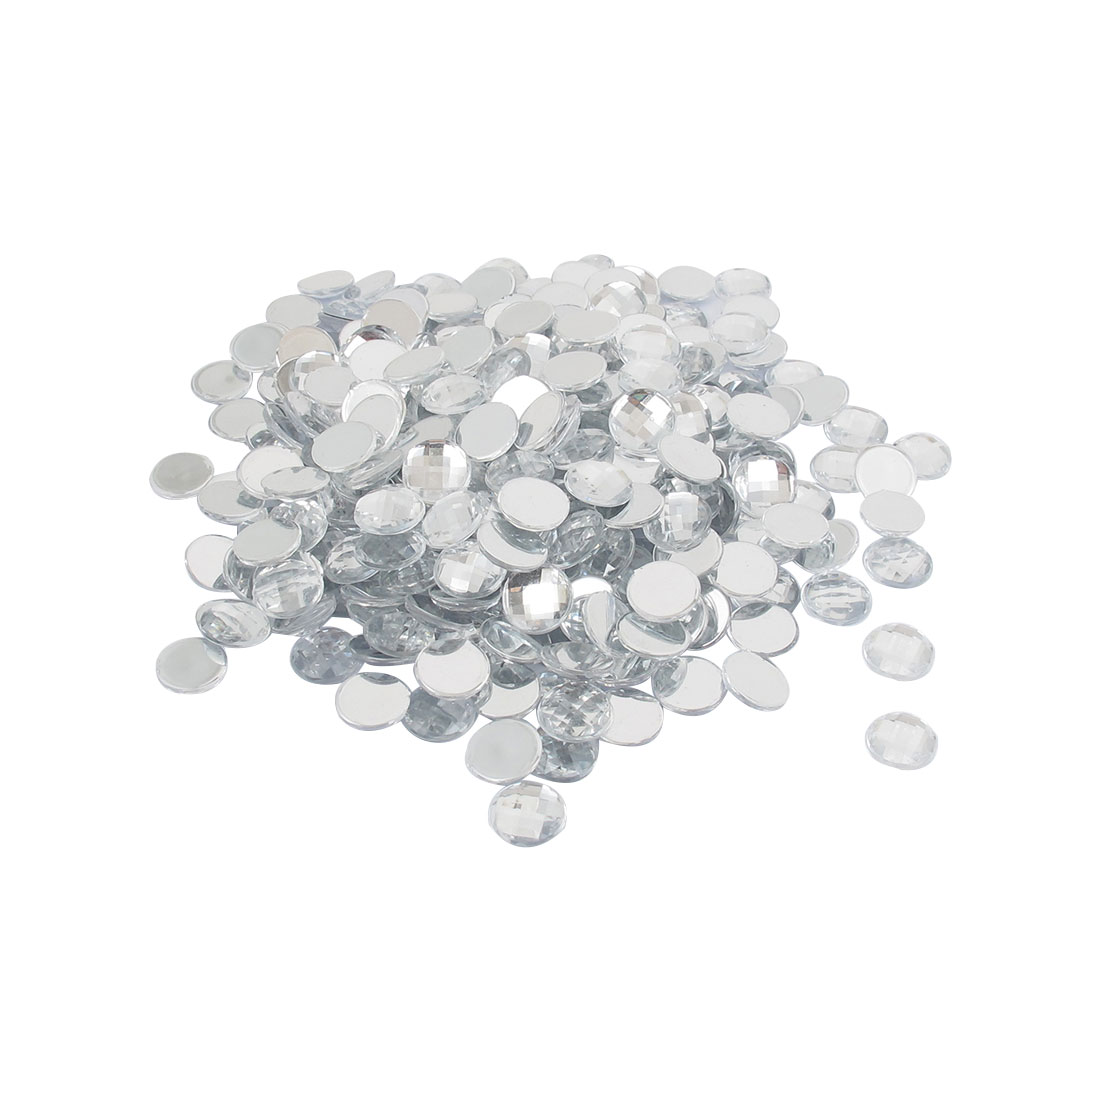 1000 Pcs 12mm Diameter Clear Crystal Round Acrylic Flat Back